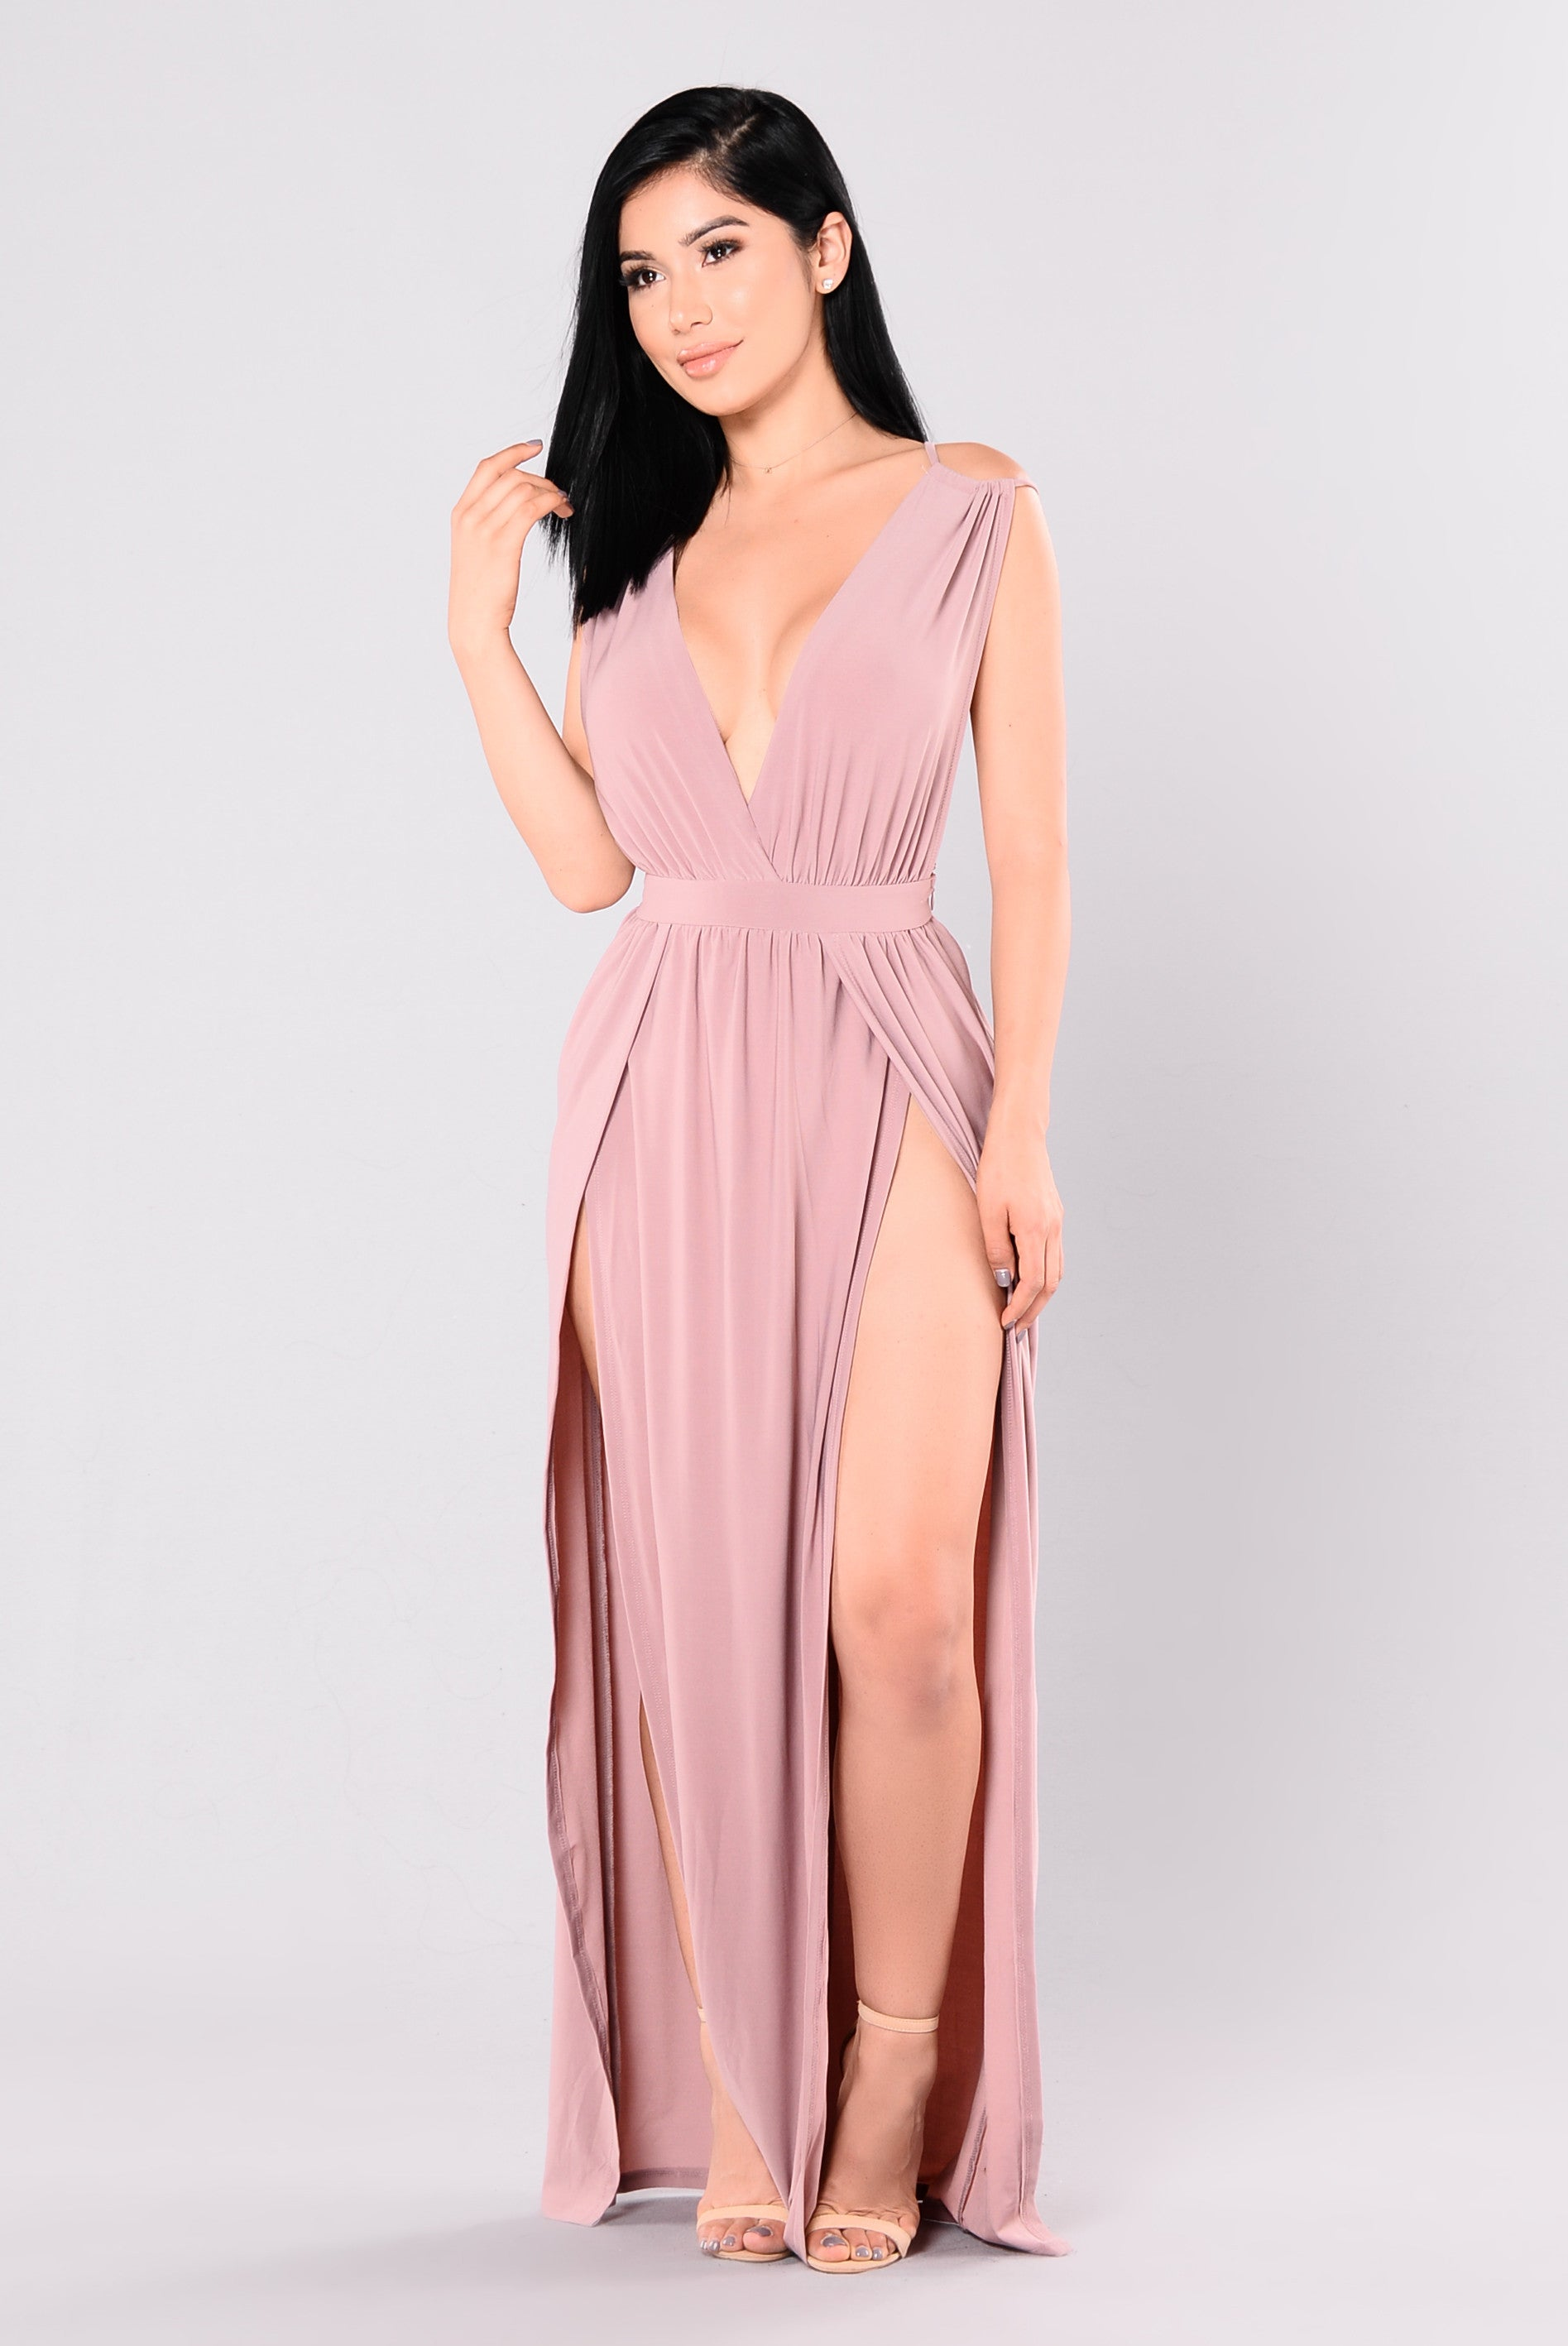 Lilac dress. What to wear 7